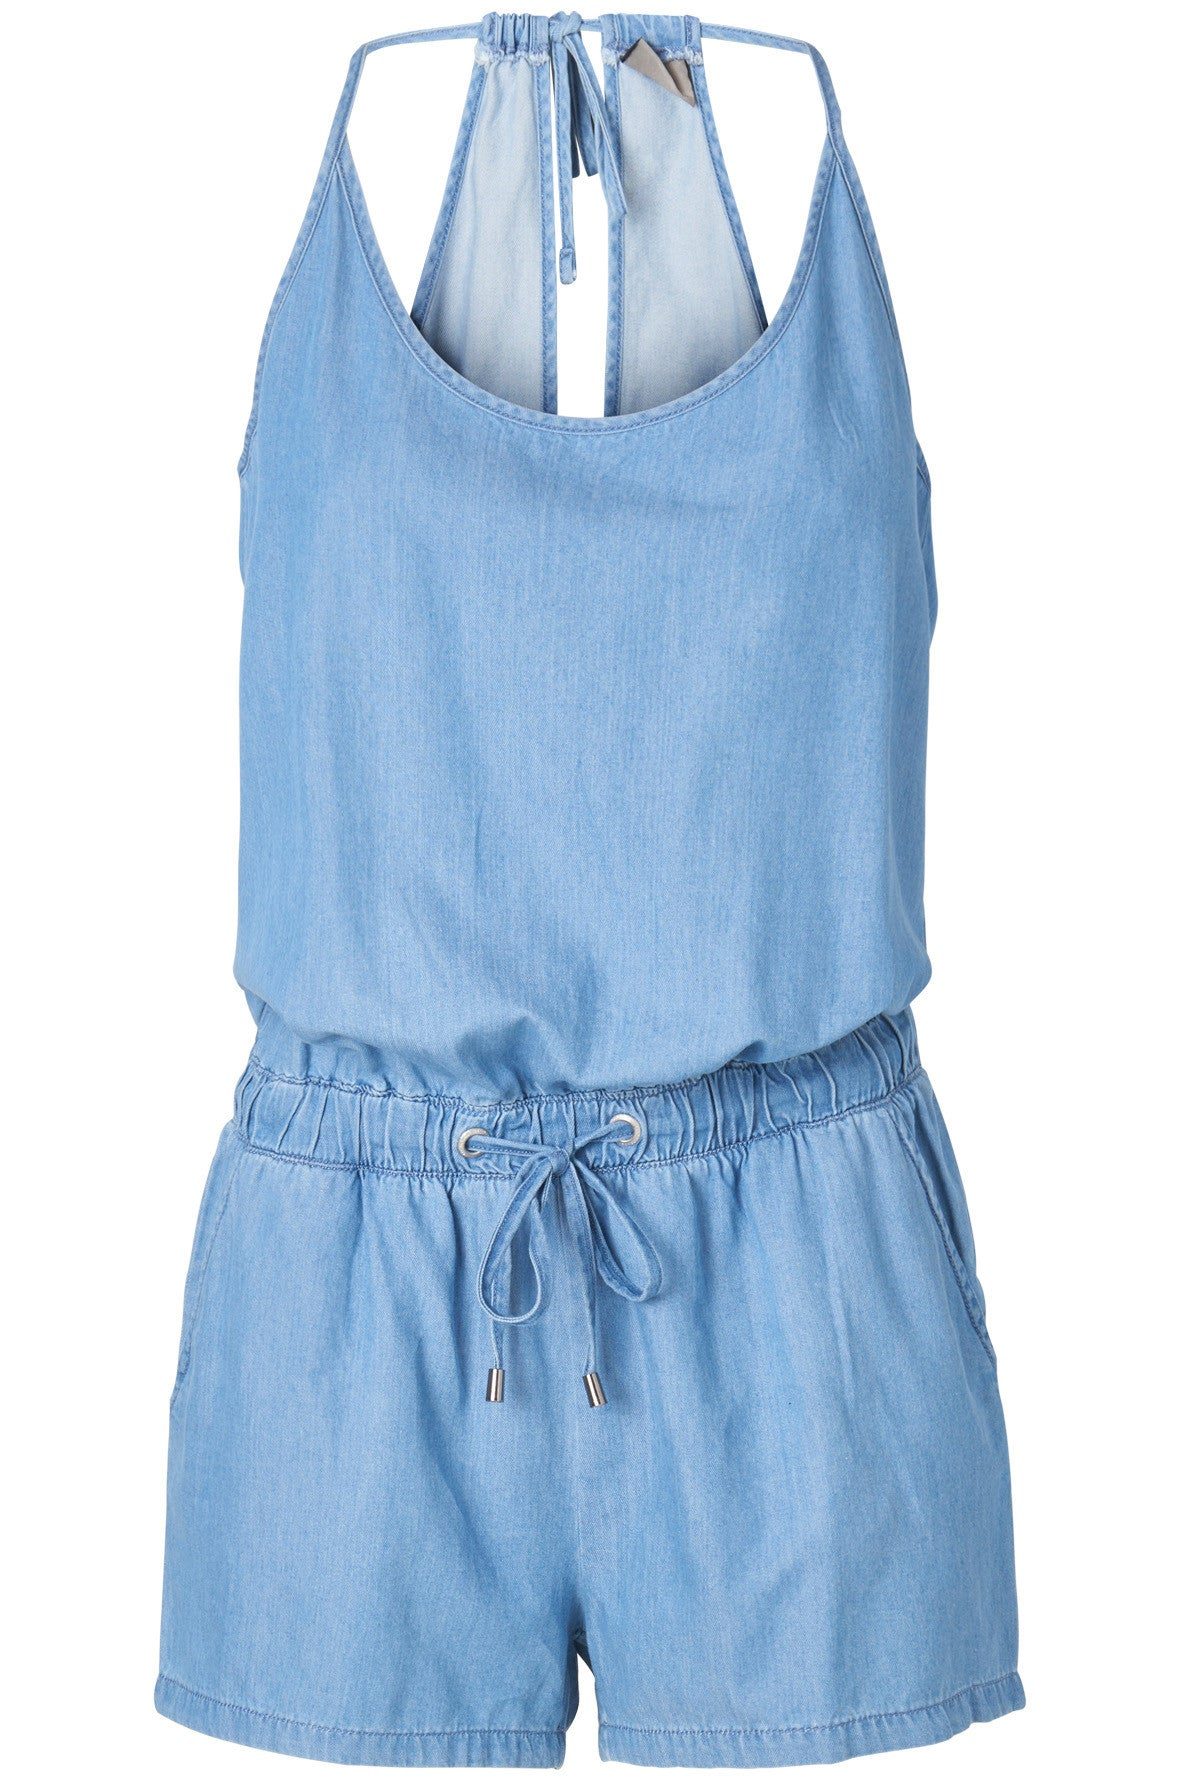 CHAMBRAY SHORT JUMPER